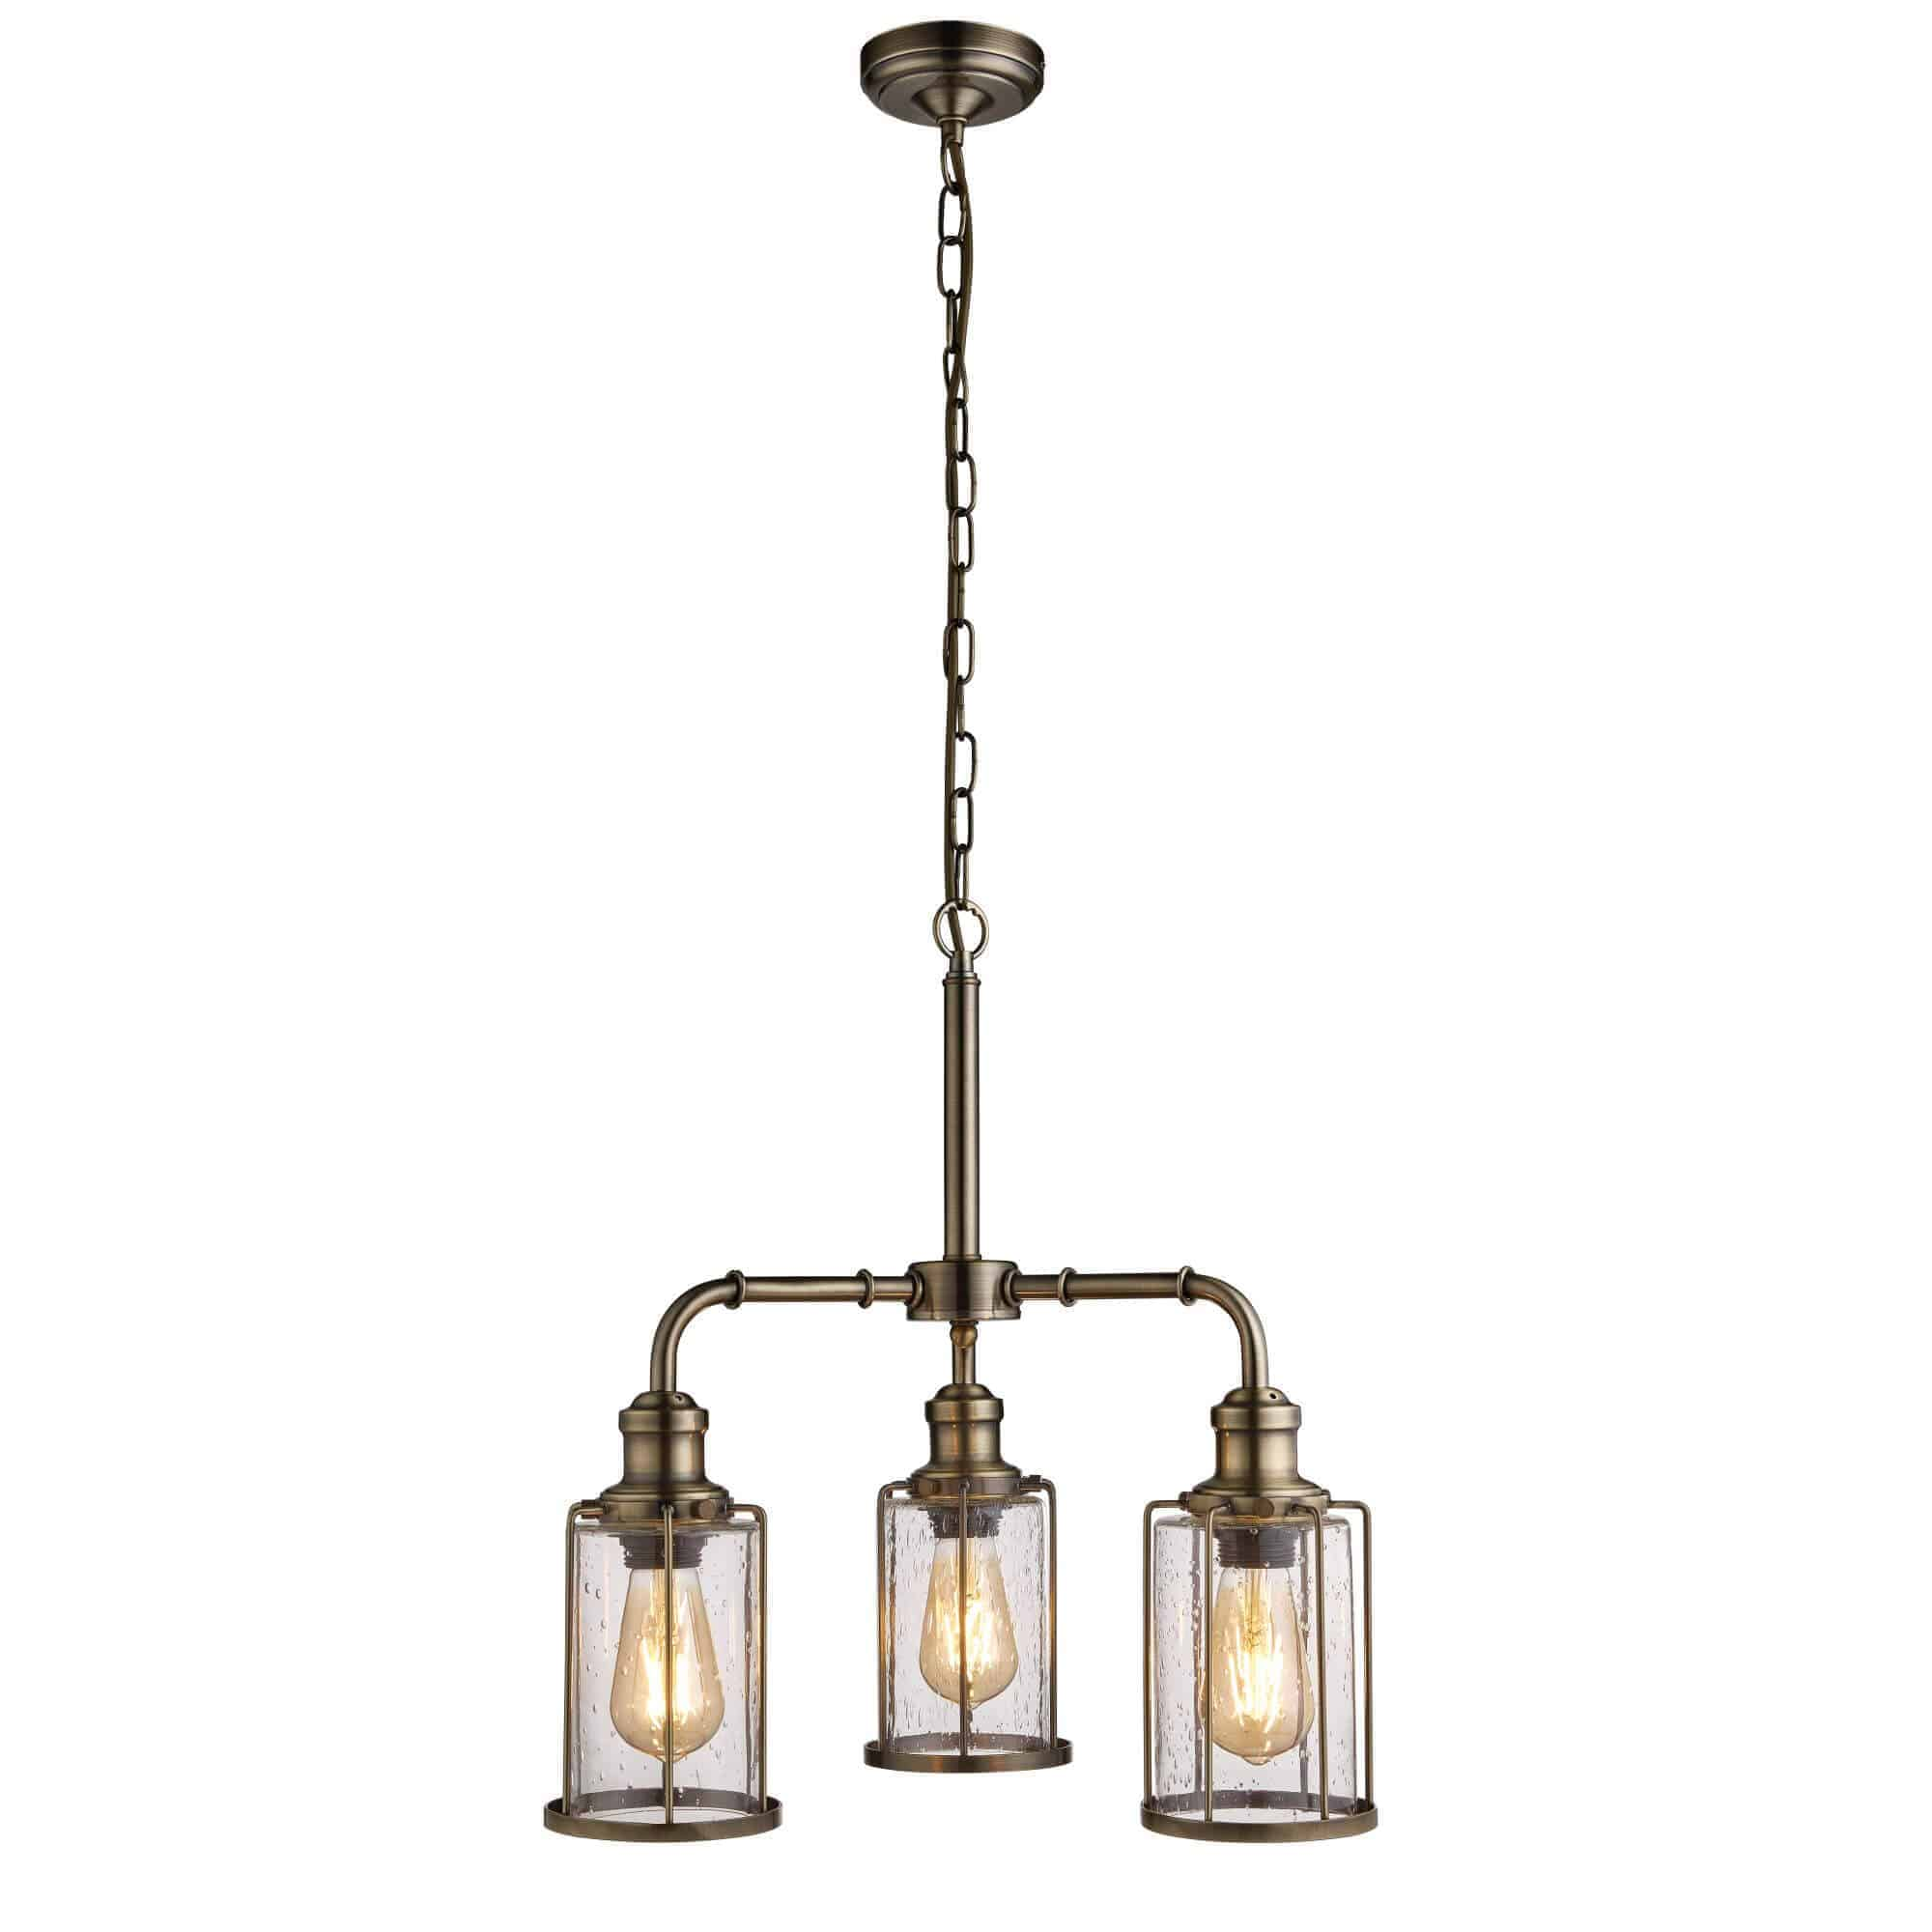 1163-3AB – Searchlight Pipes 3 Light Pendant Antique Brass With Seeded Glass